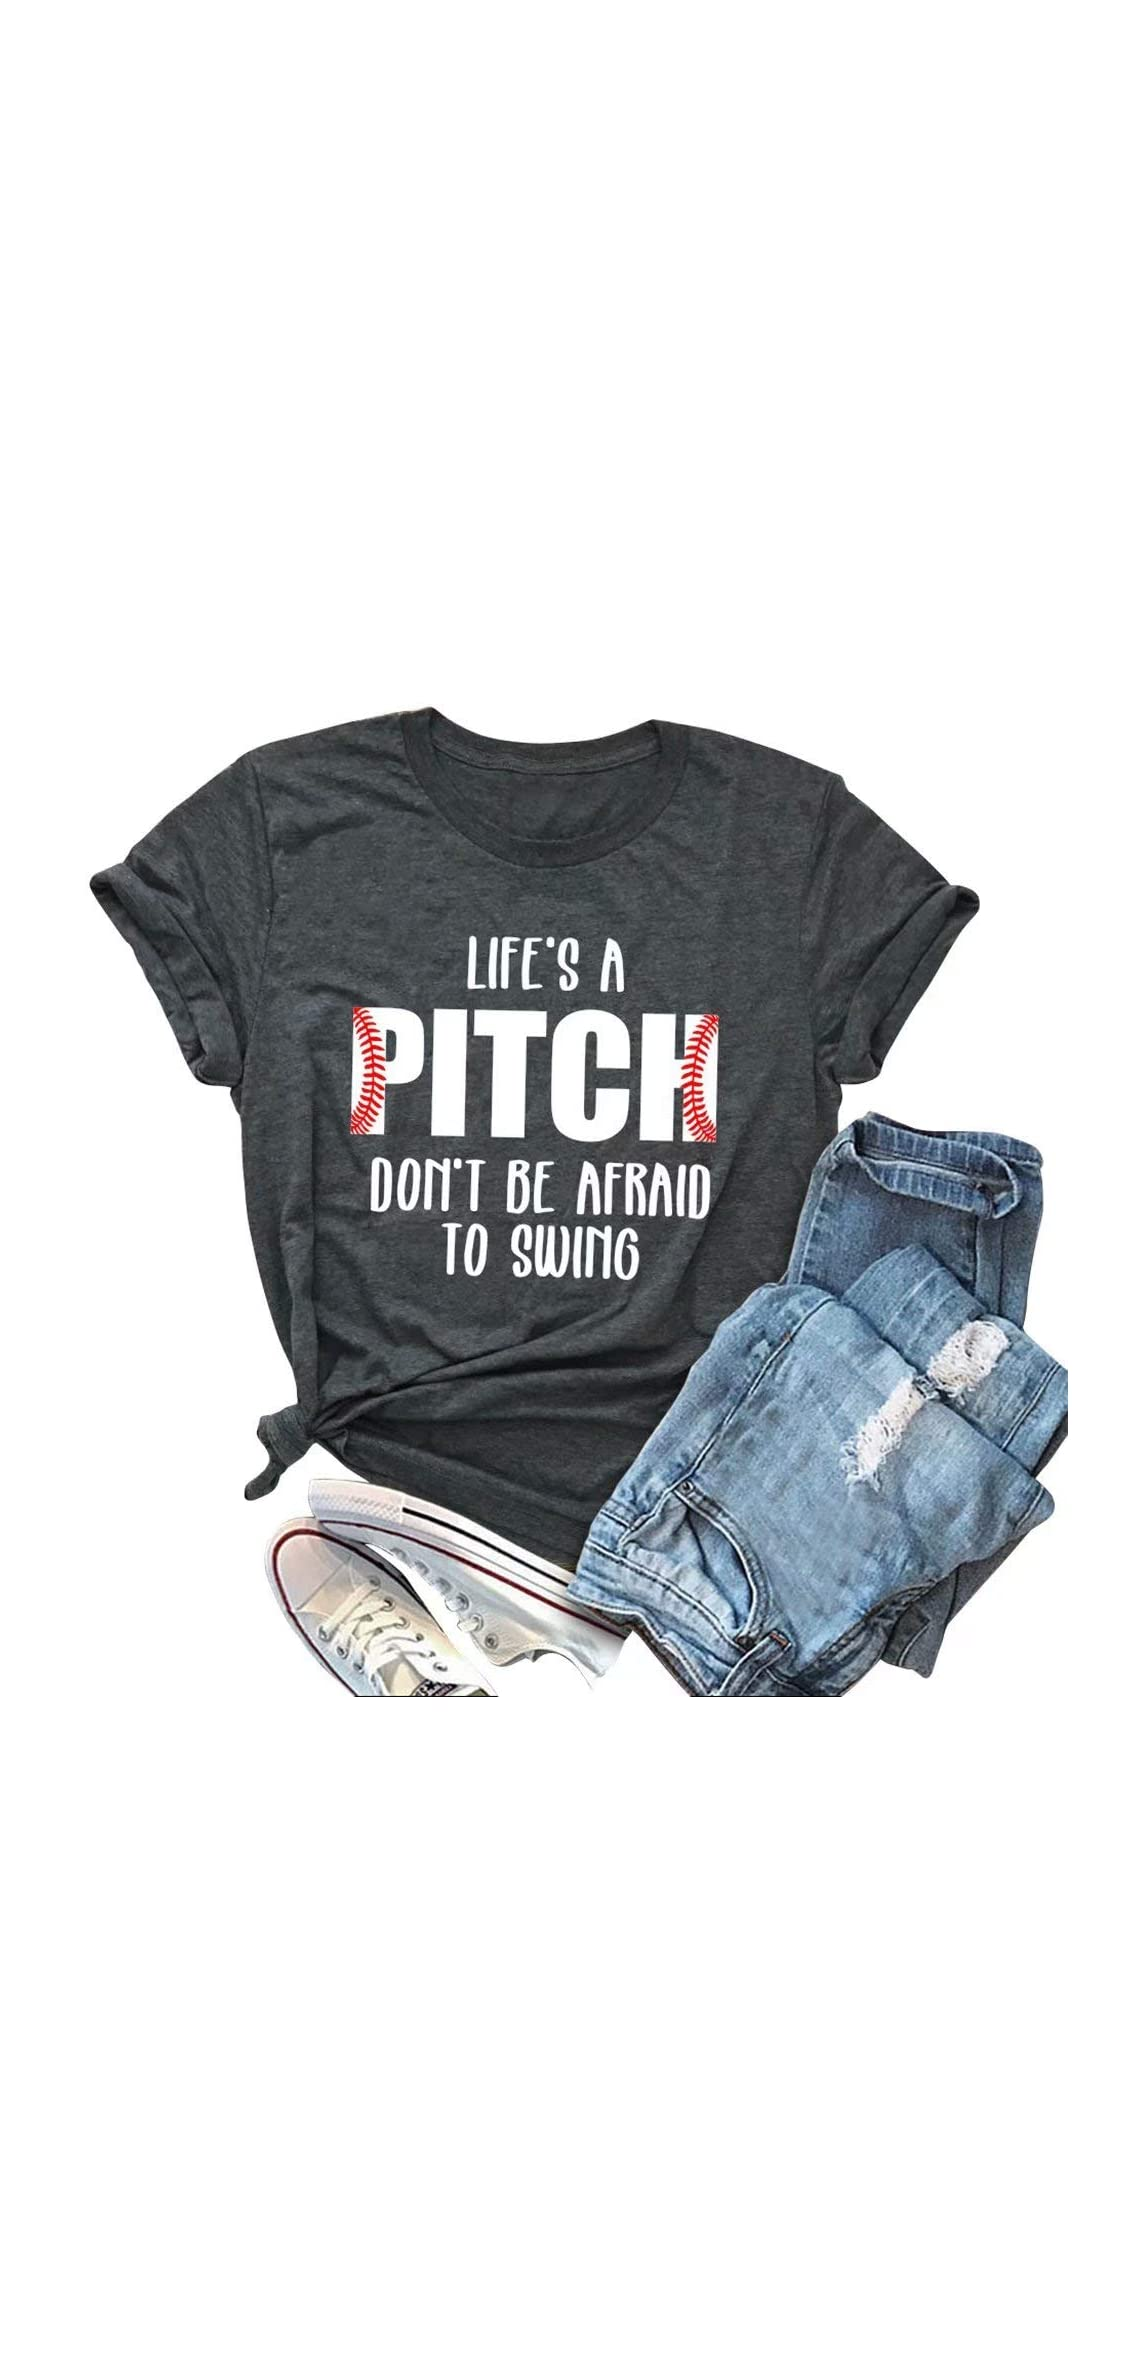 Women's Life's A Pitch Don't Be Afraid To Swing T-shirt